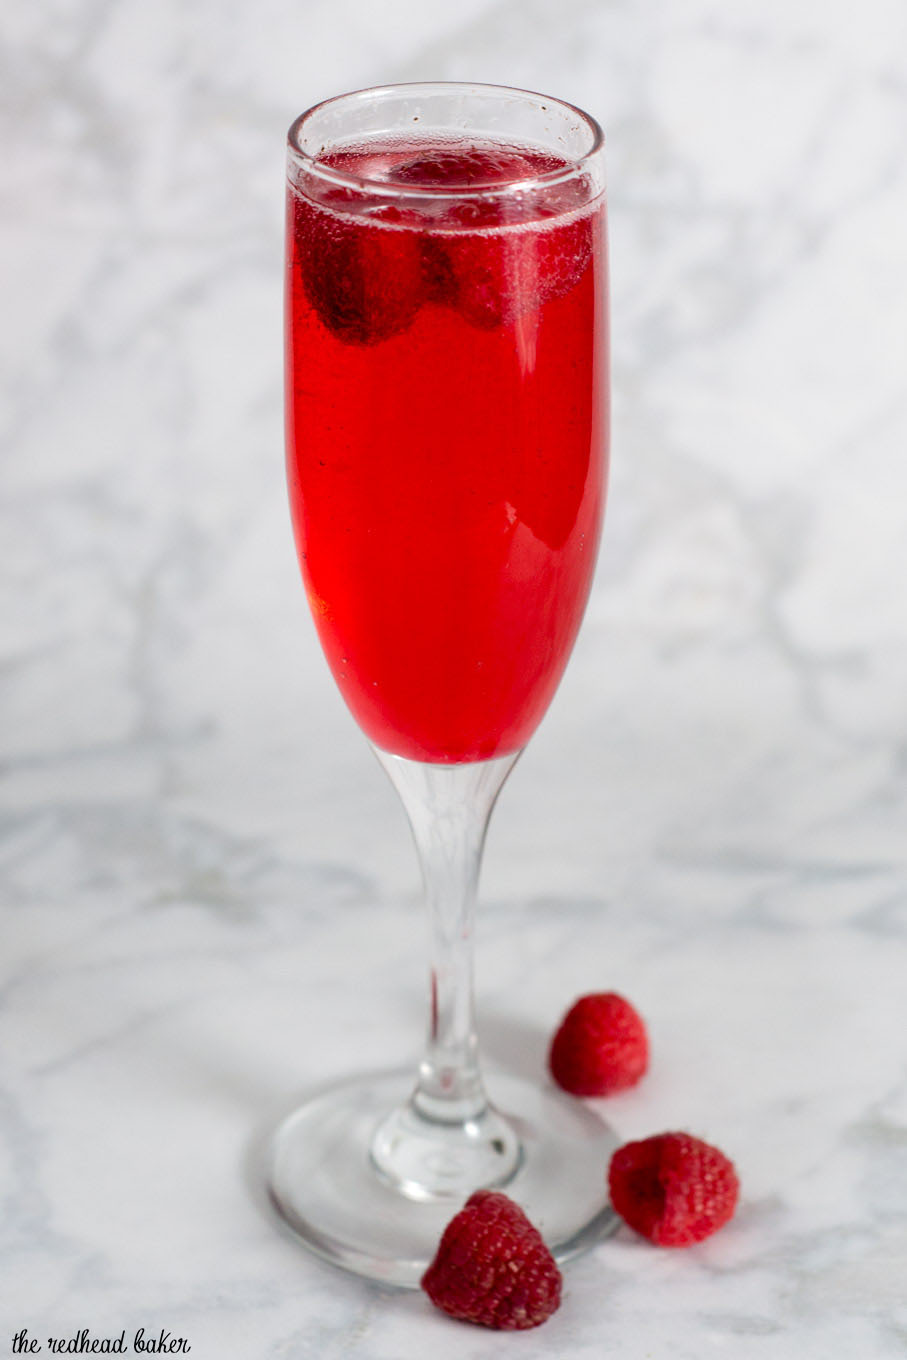 Raspberry Bellini for Valentine's Day by The Redhead Baker